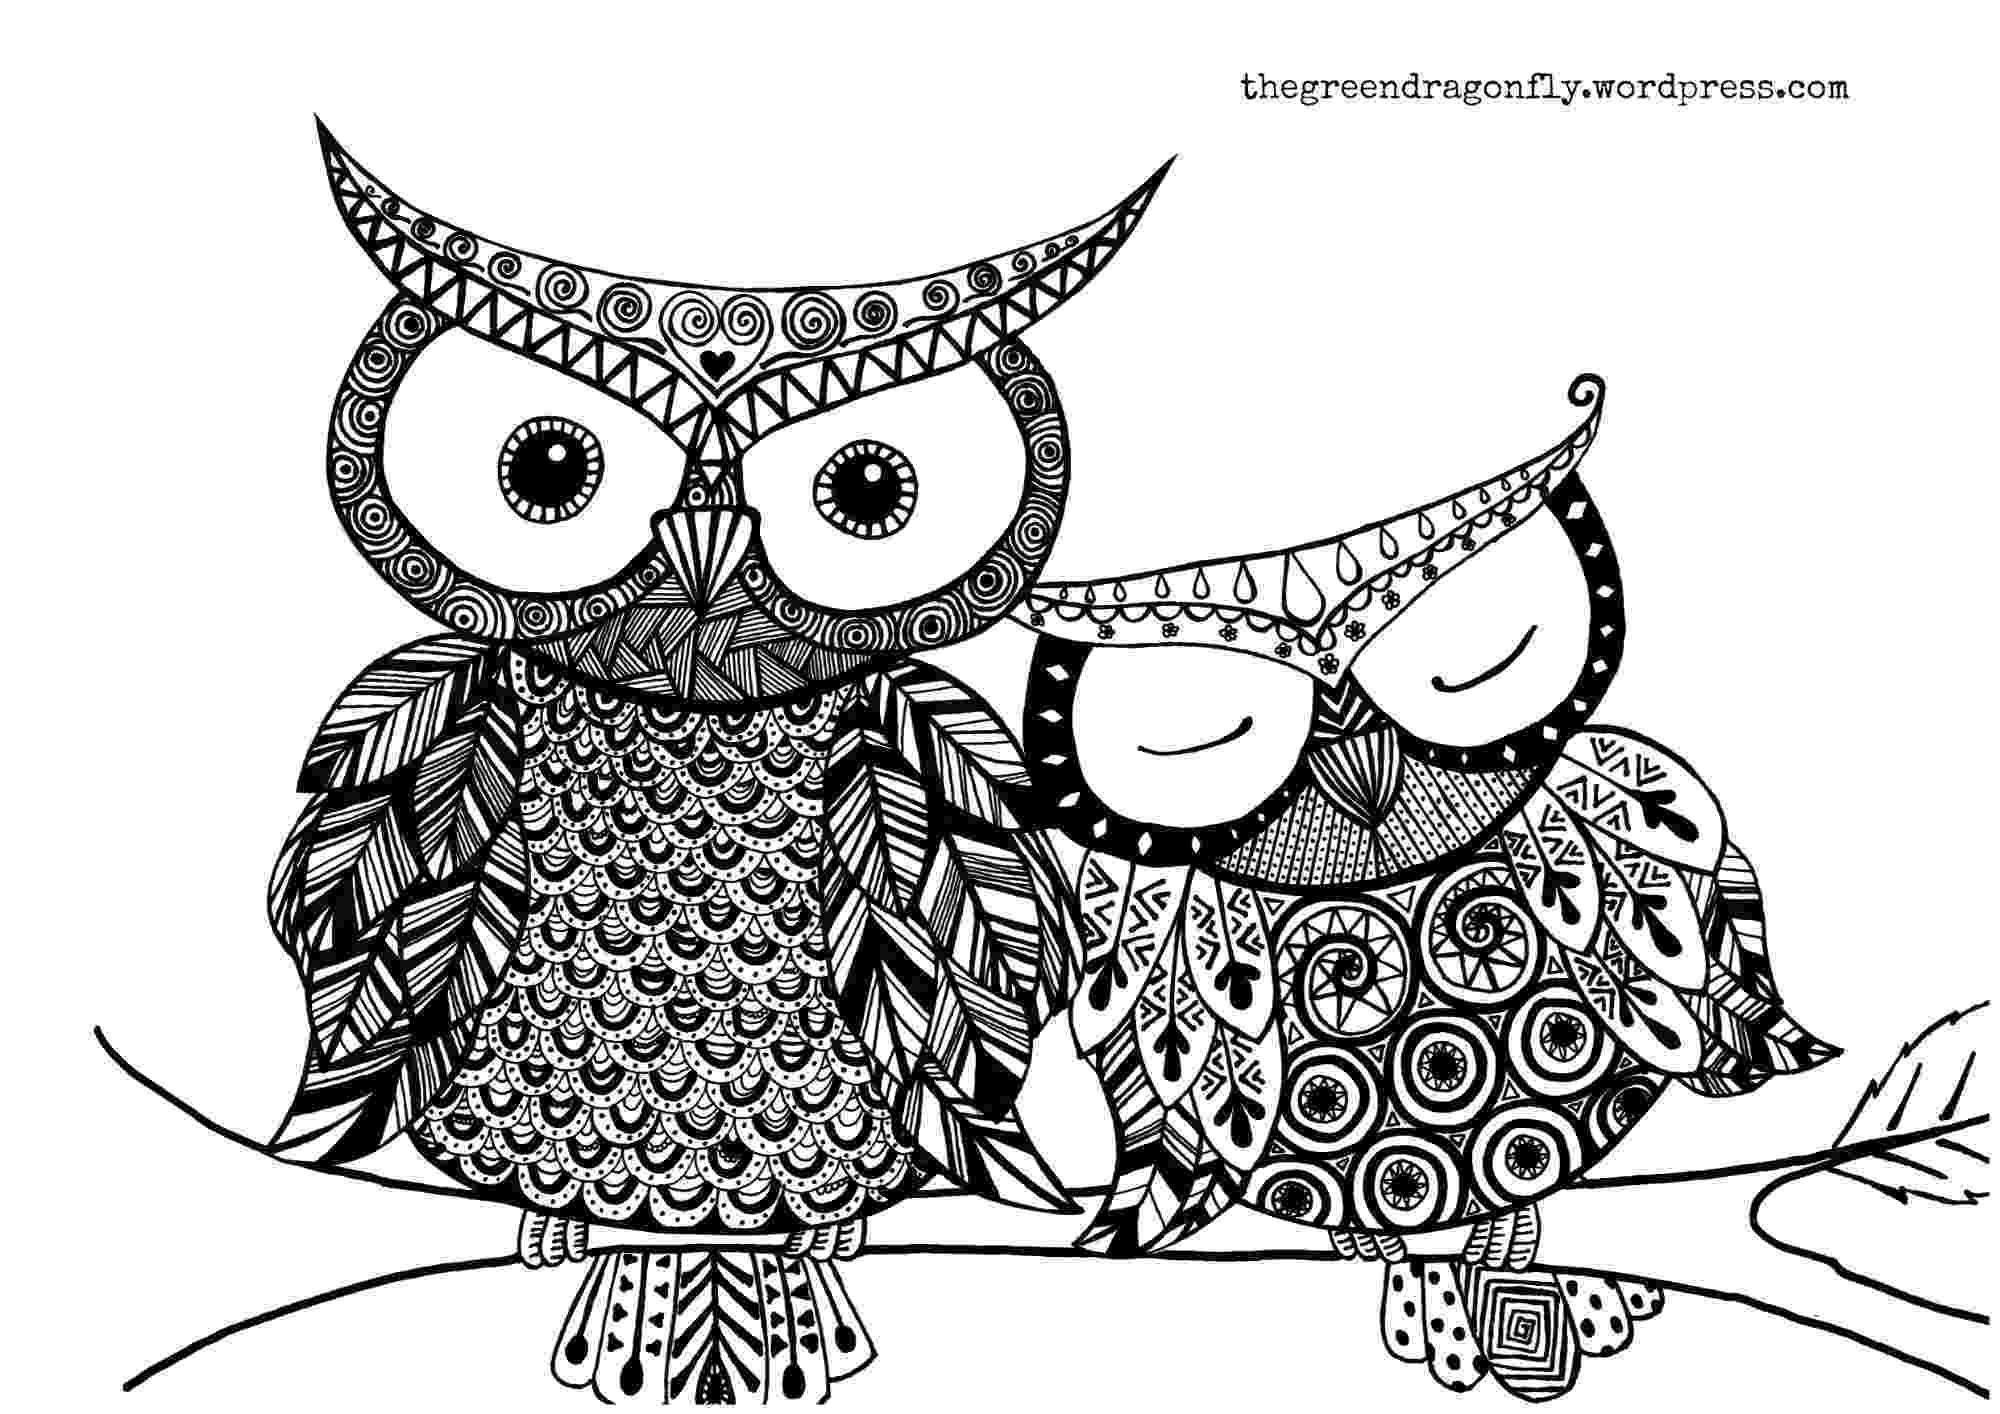 owl coloring sheet cartoon owl coloring page free printable coloring pages sheet owl coloring